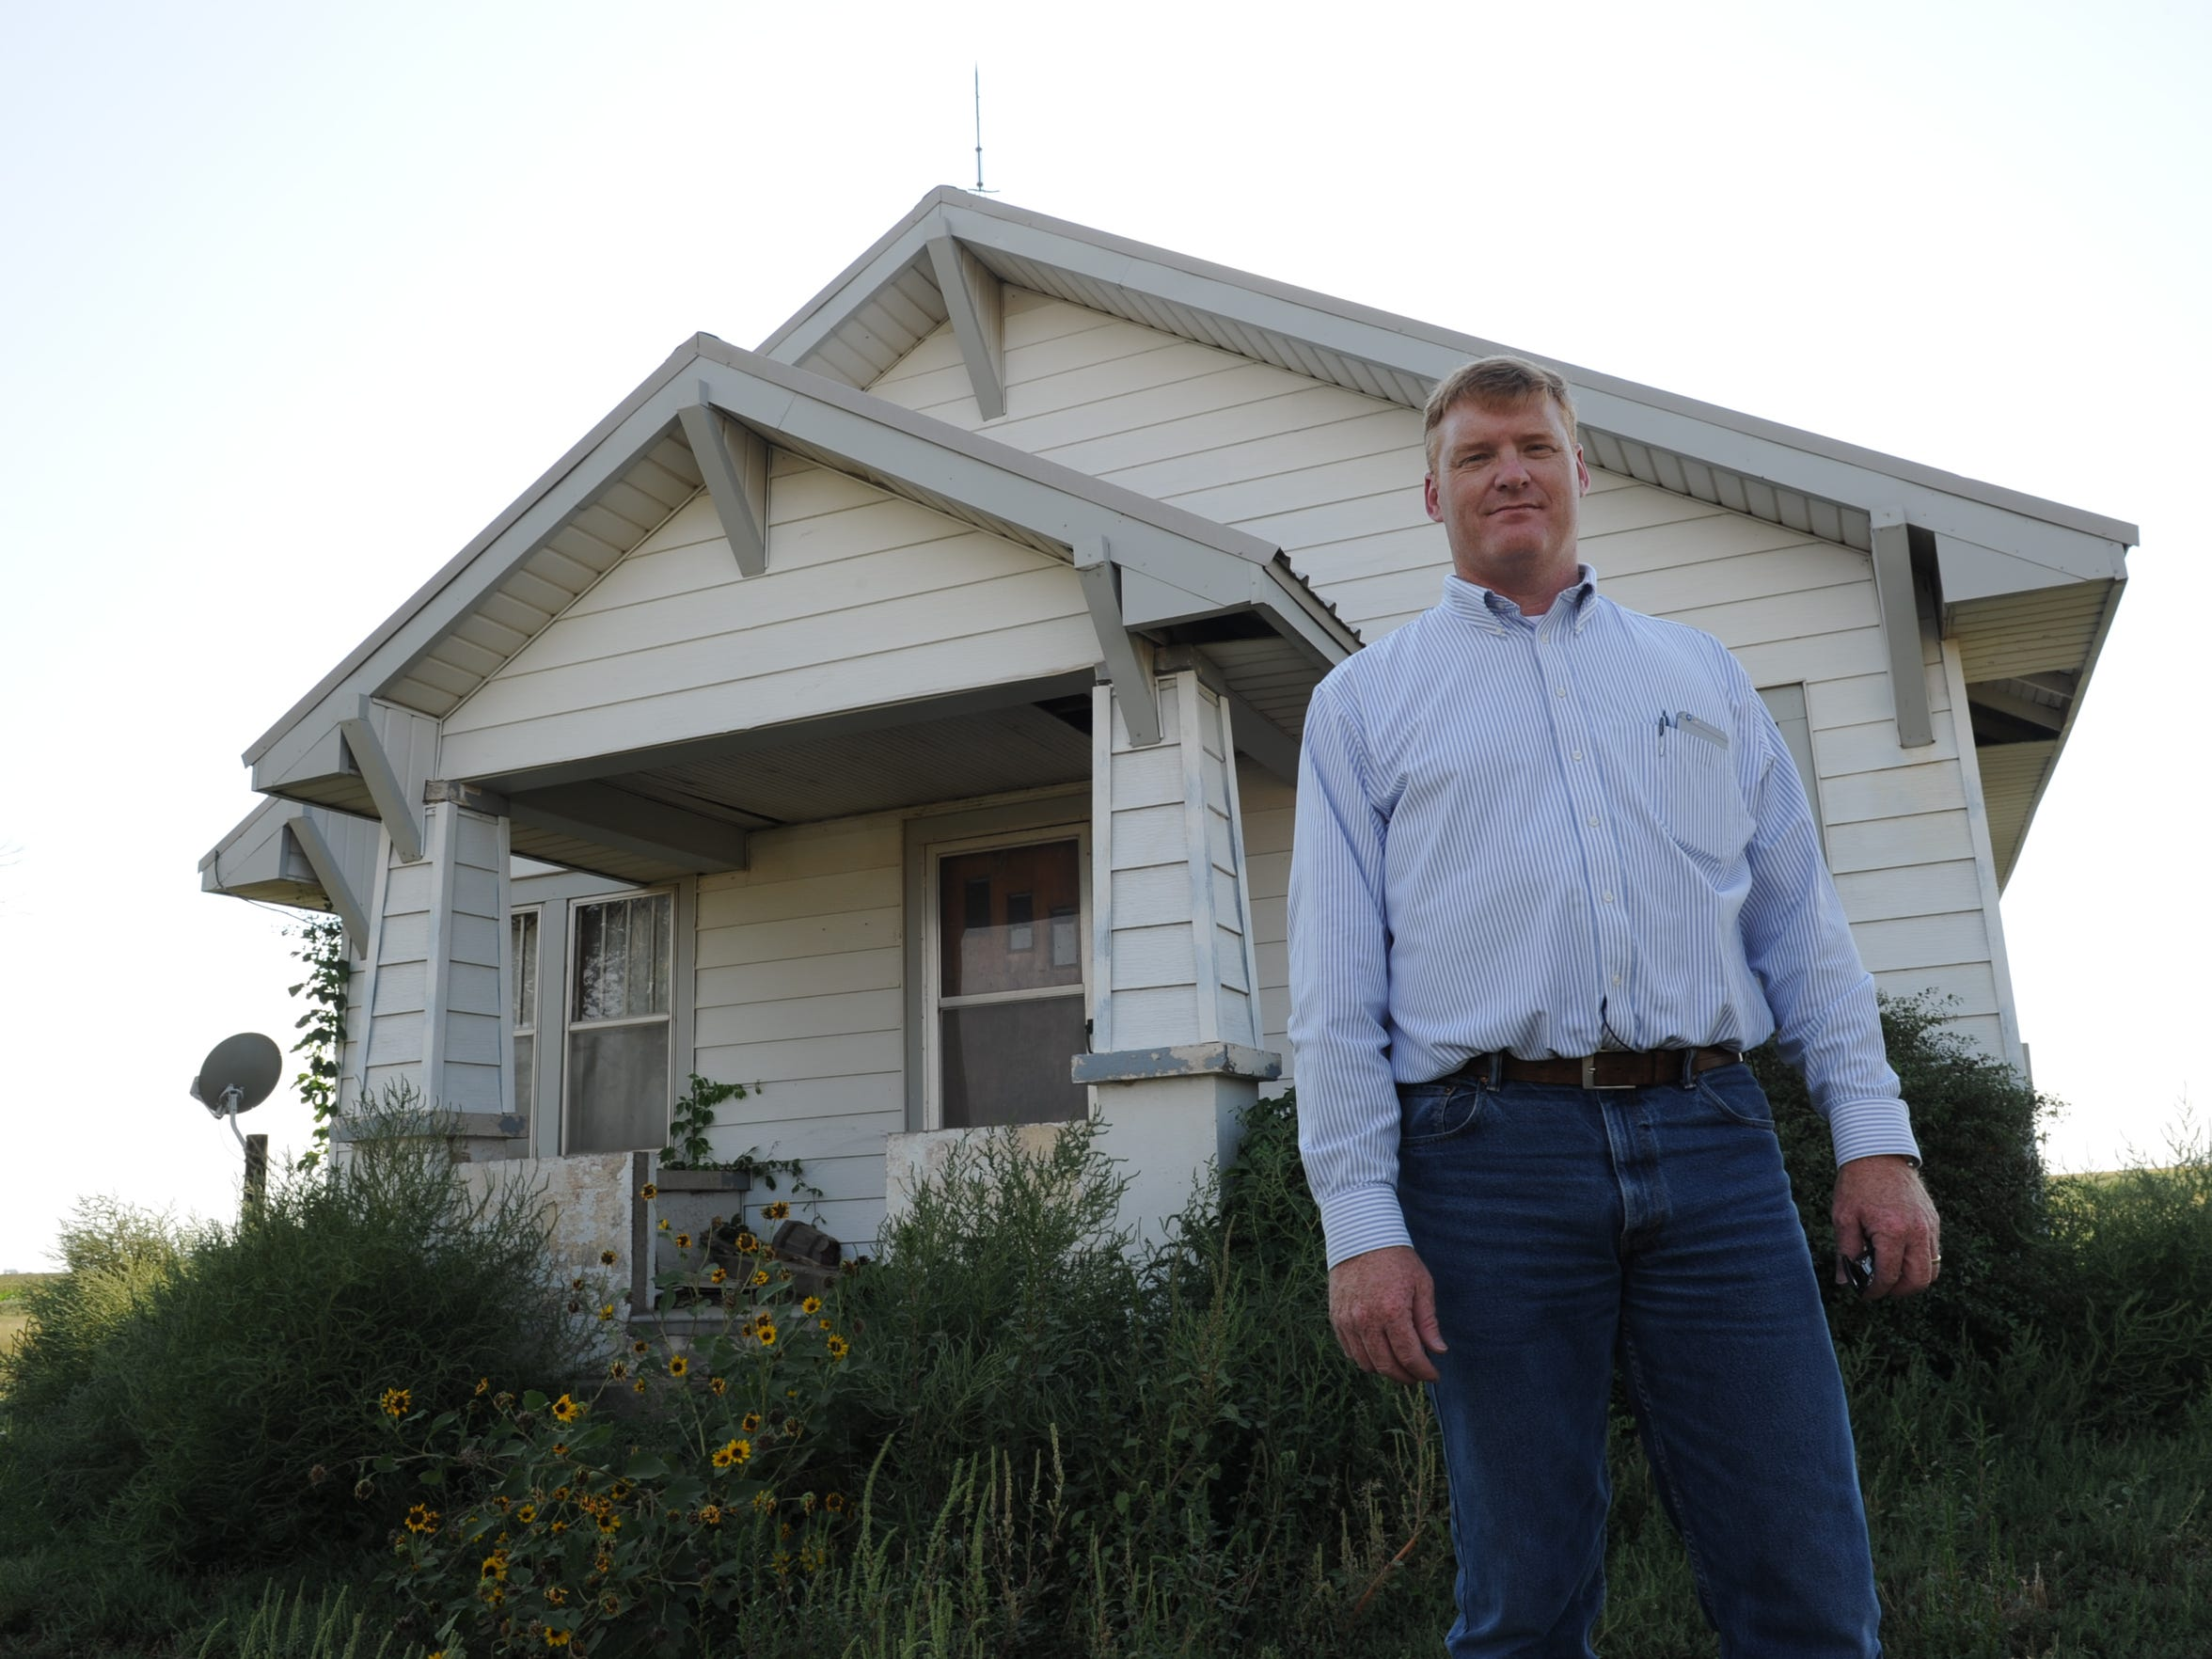 Jay Garetson stands in front of a farmhouse where he lived as a young boy. No one has been able to live in it since its well went dry two years ago. He said he fears more houses will be abandoned in the area in the coming years unless steps are taken to slow the decline of the Ogallala Aquifer.